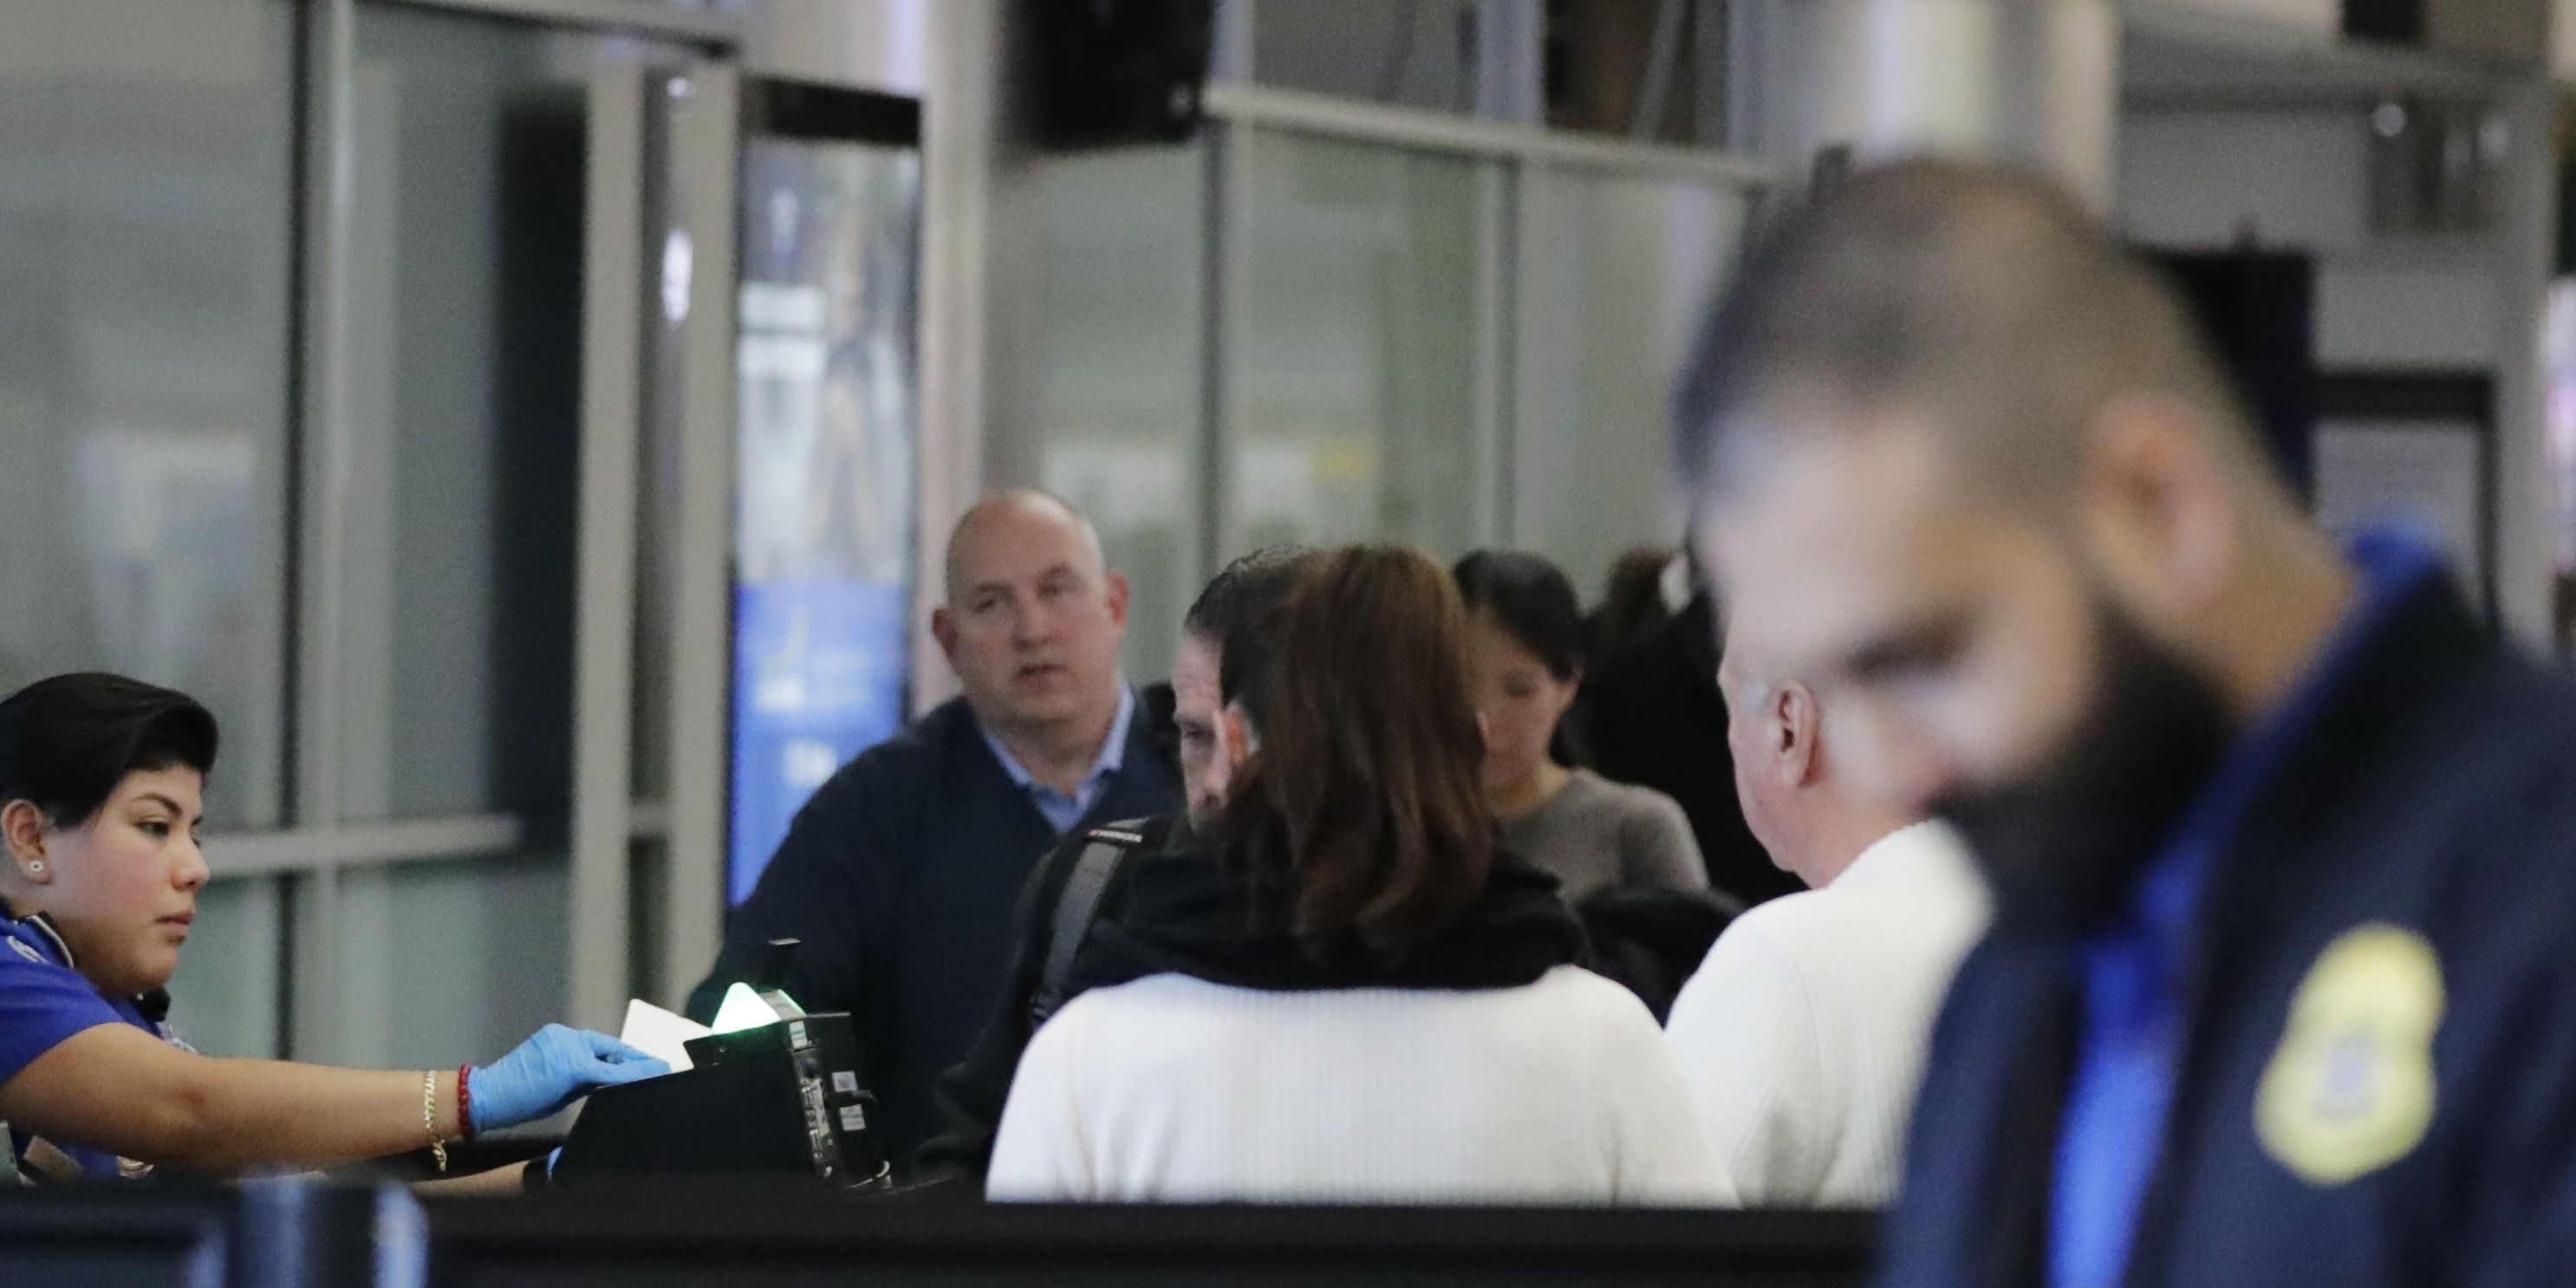 As shutdown ends, unclear when air operations will be fully funded